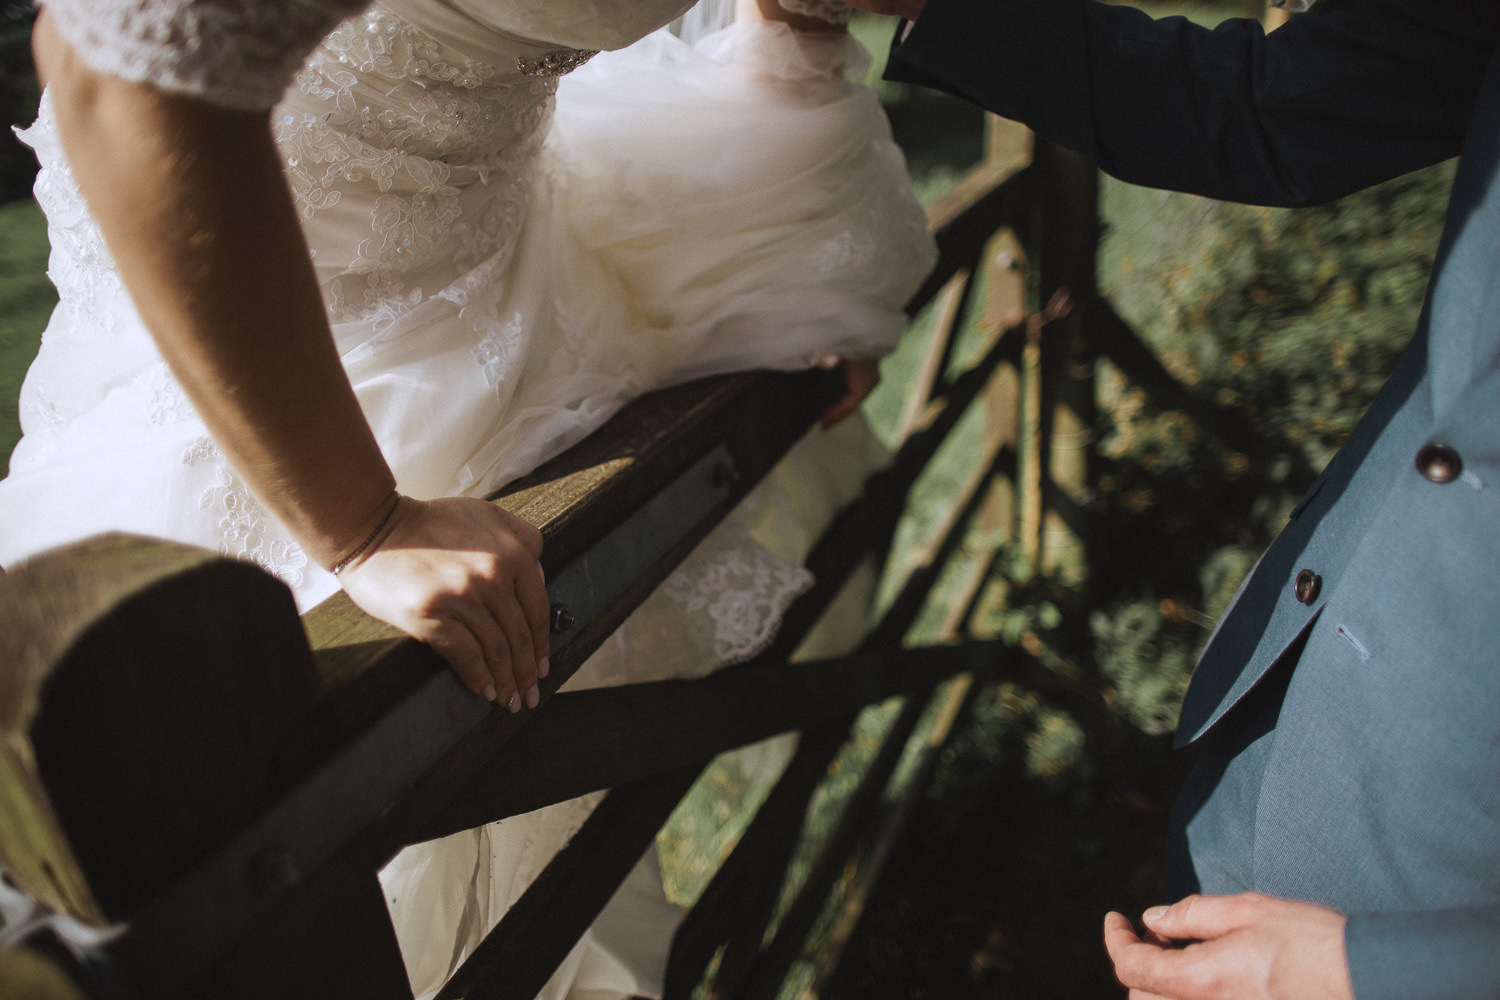 Bride is climbing over a fence